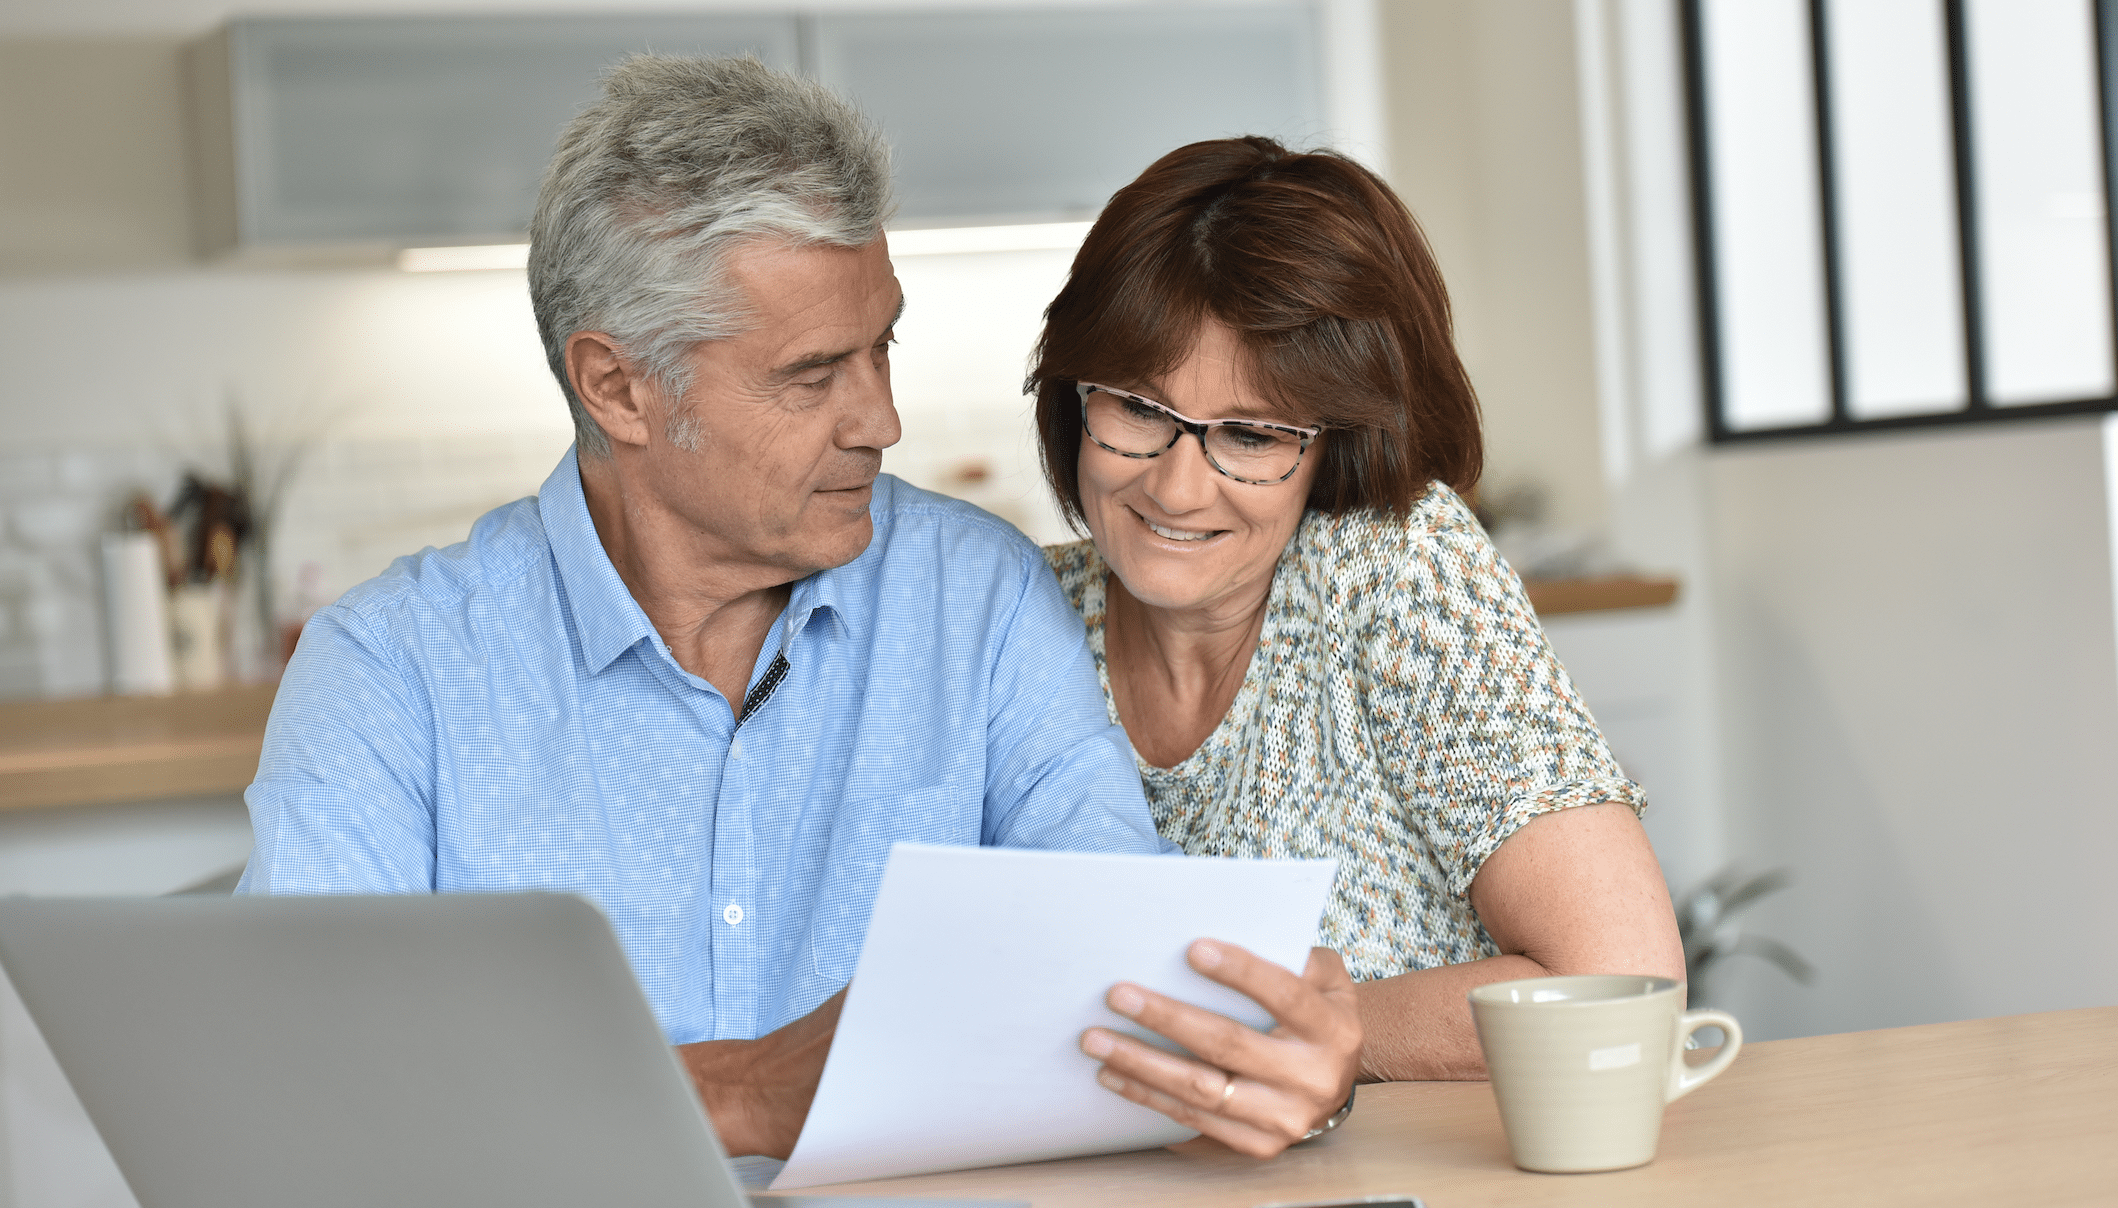 Couple sitting at table with laptop on looking at paperwork